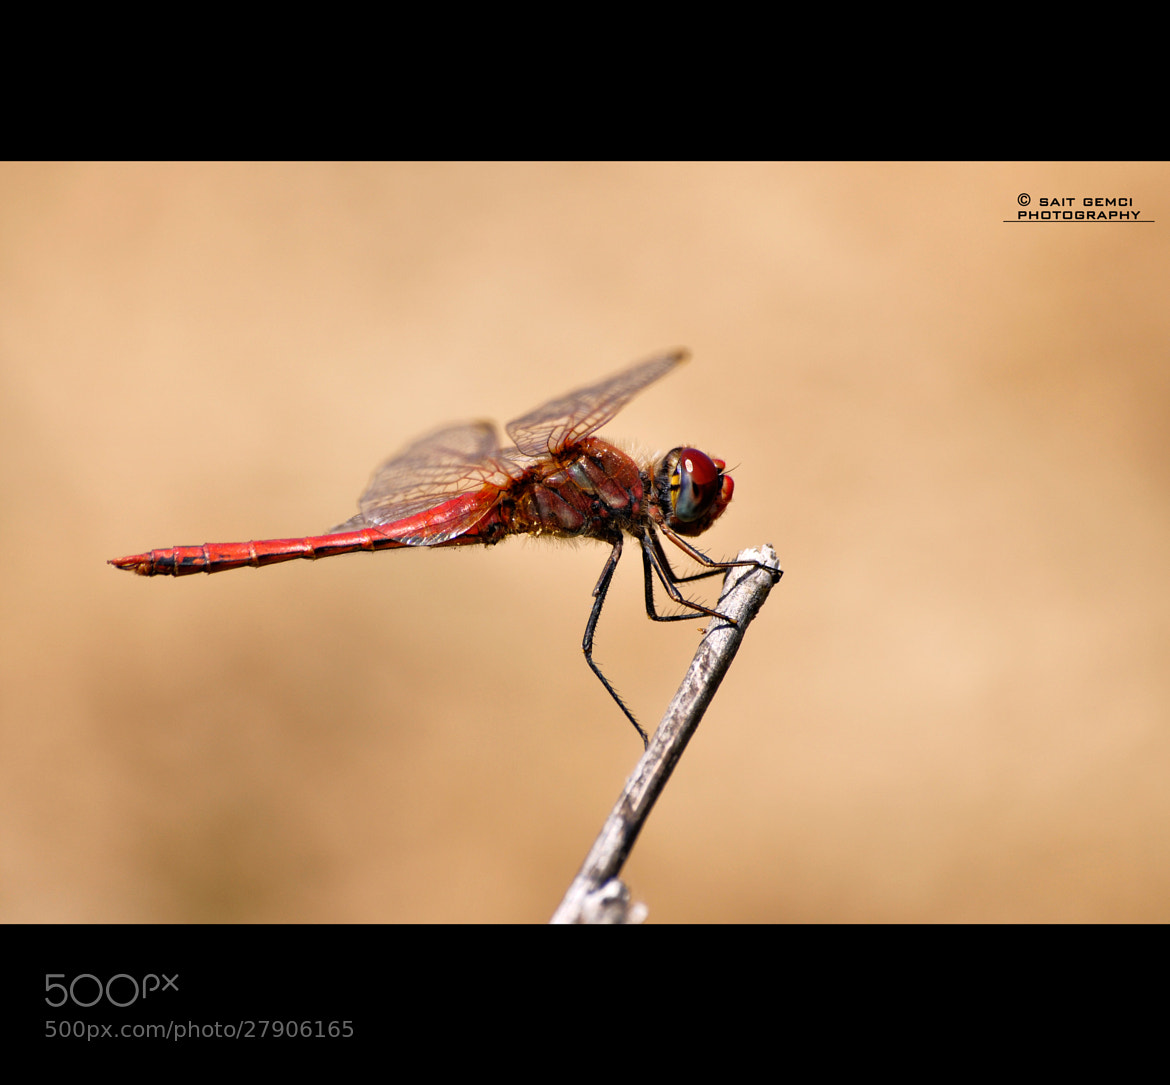 Photograph Dragonfly by Sait Gemci on 500px